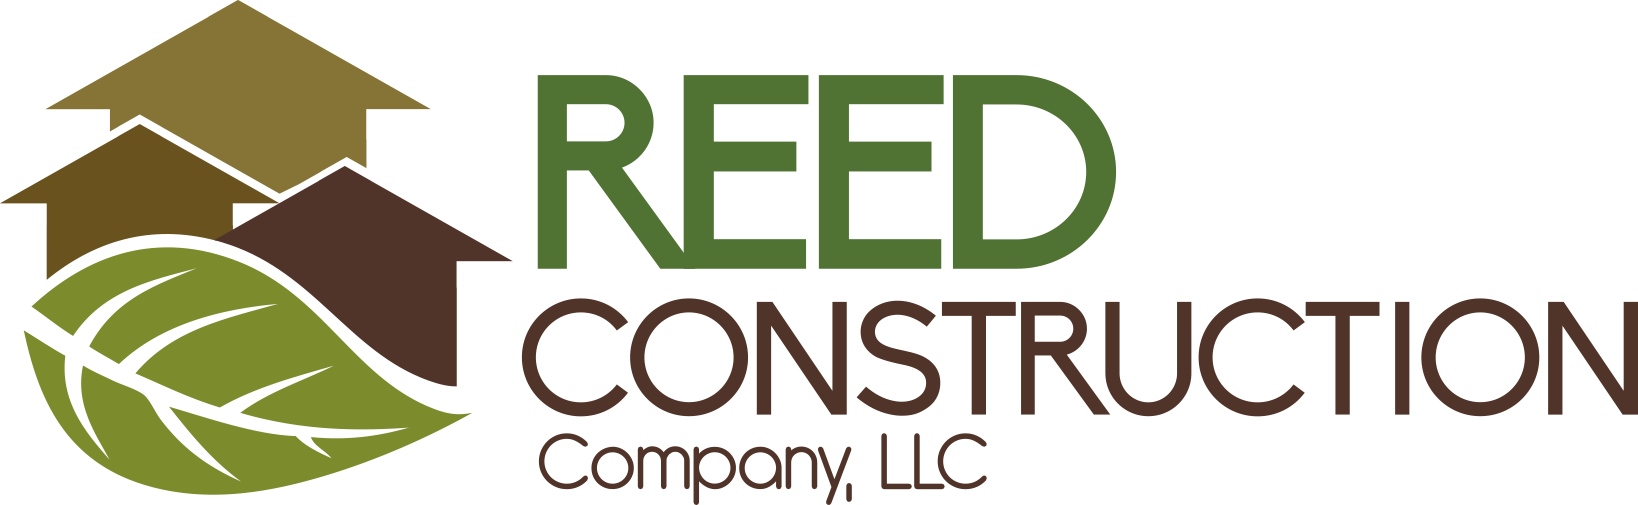 ReedConstructionCompany